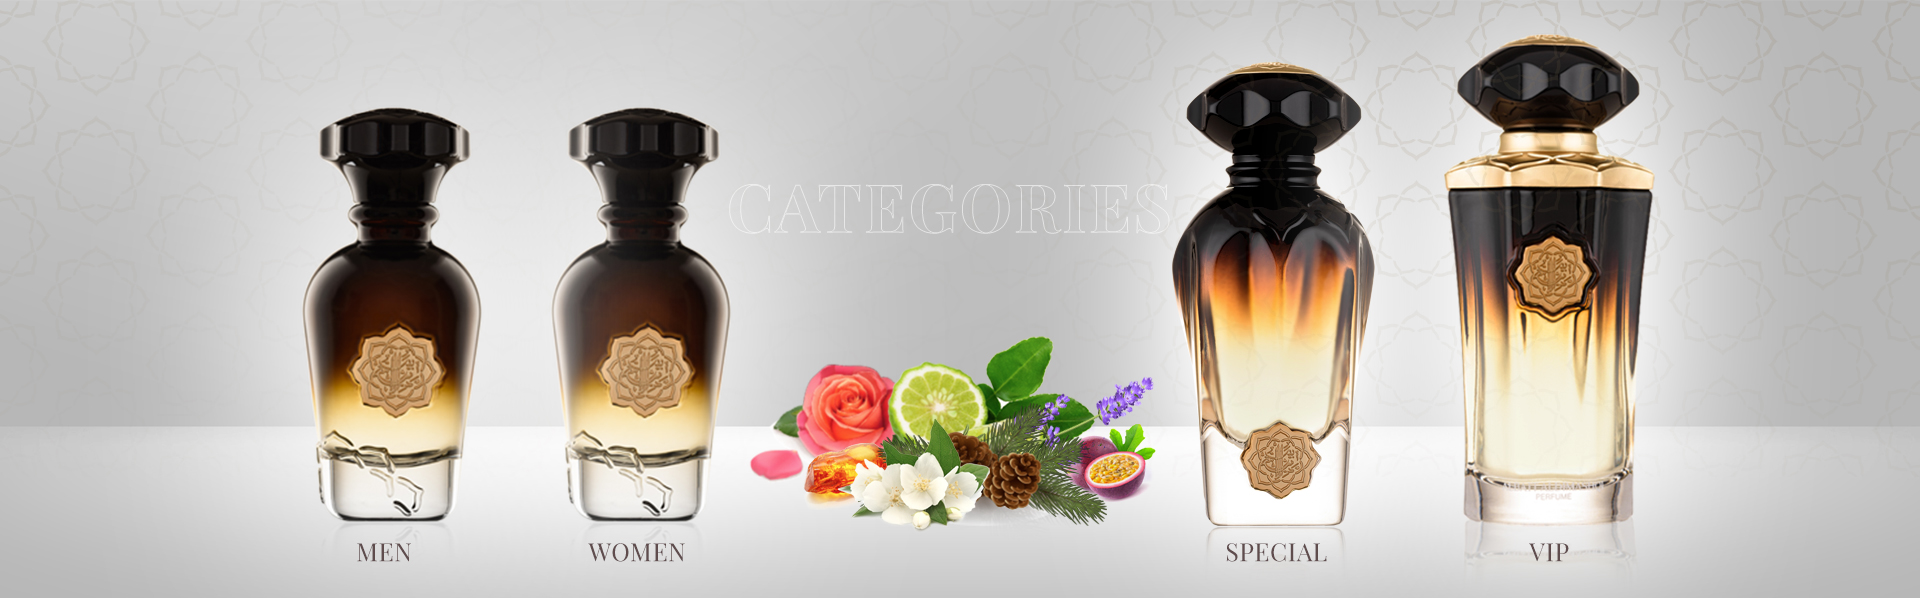 What are the Categories in our Perfume Offerings?